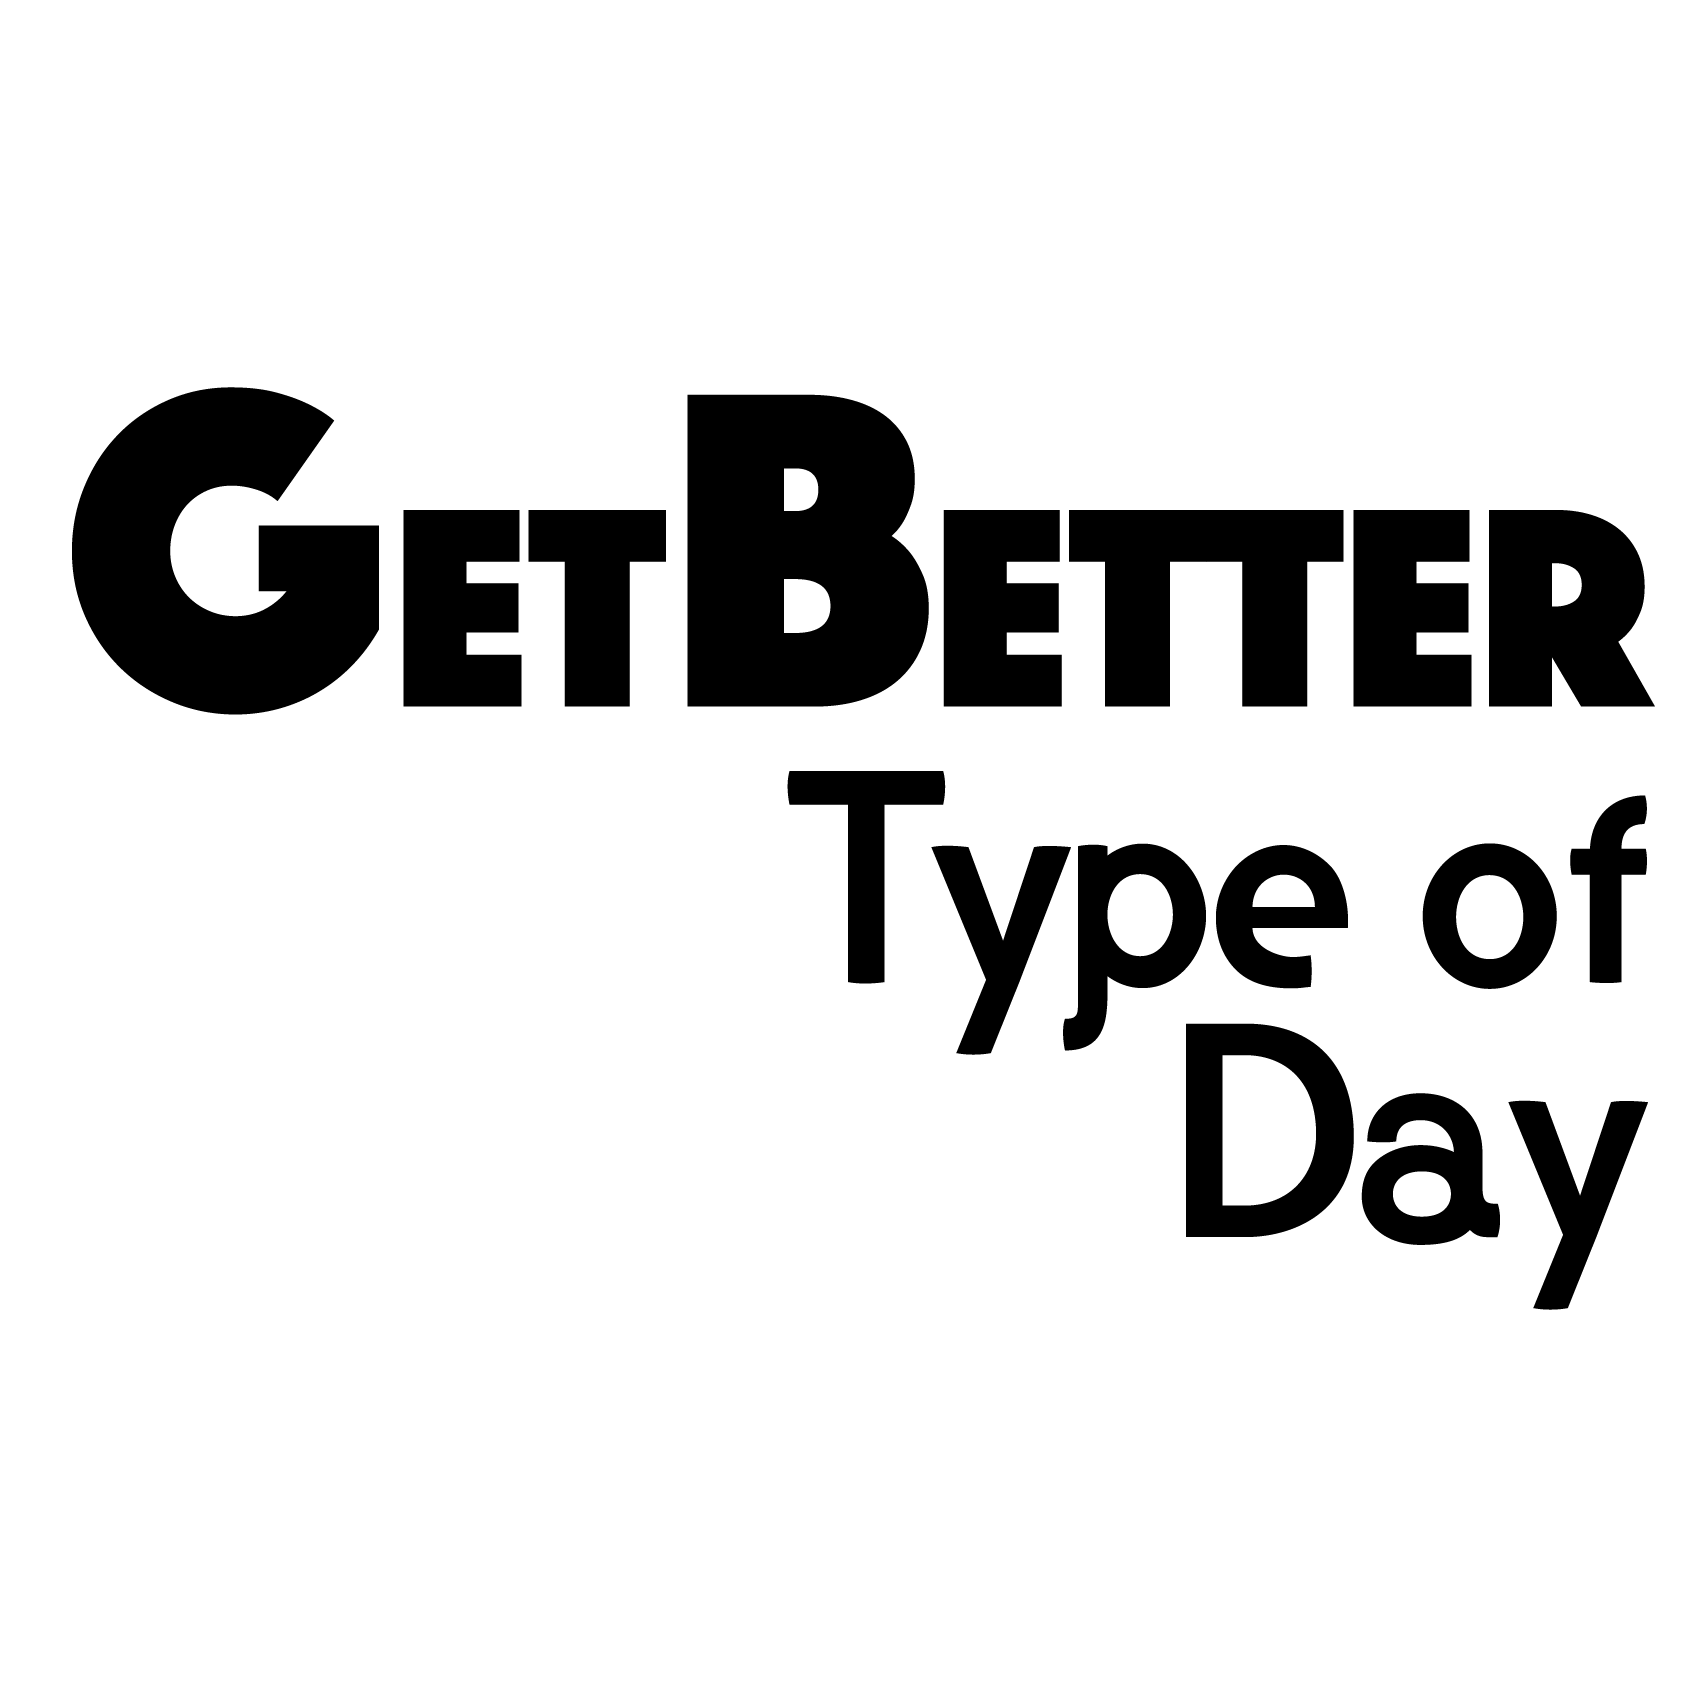 GetBetter Stickers messages sticker-0